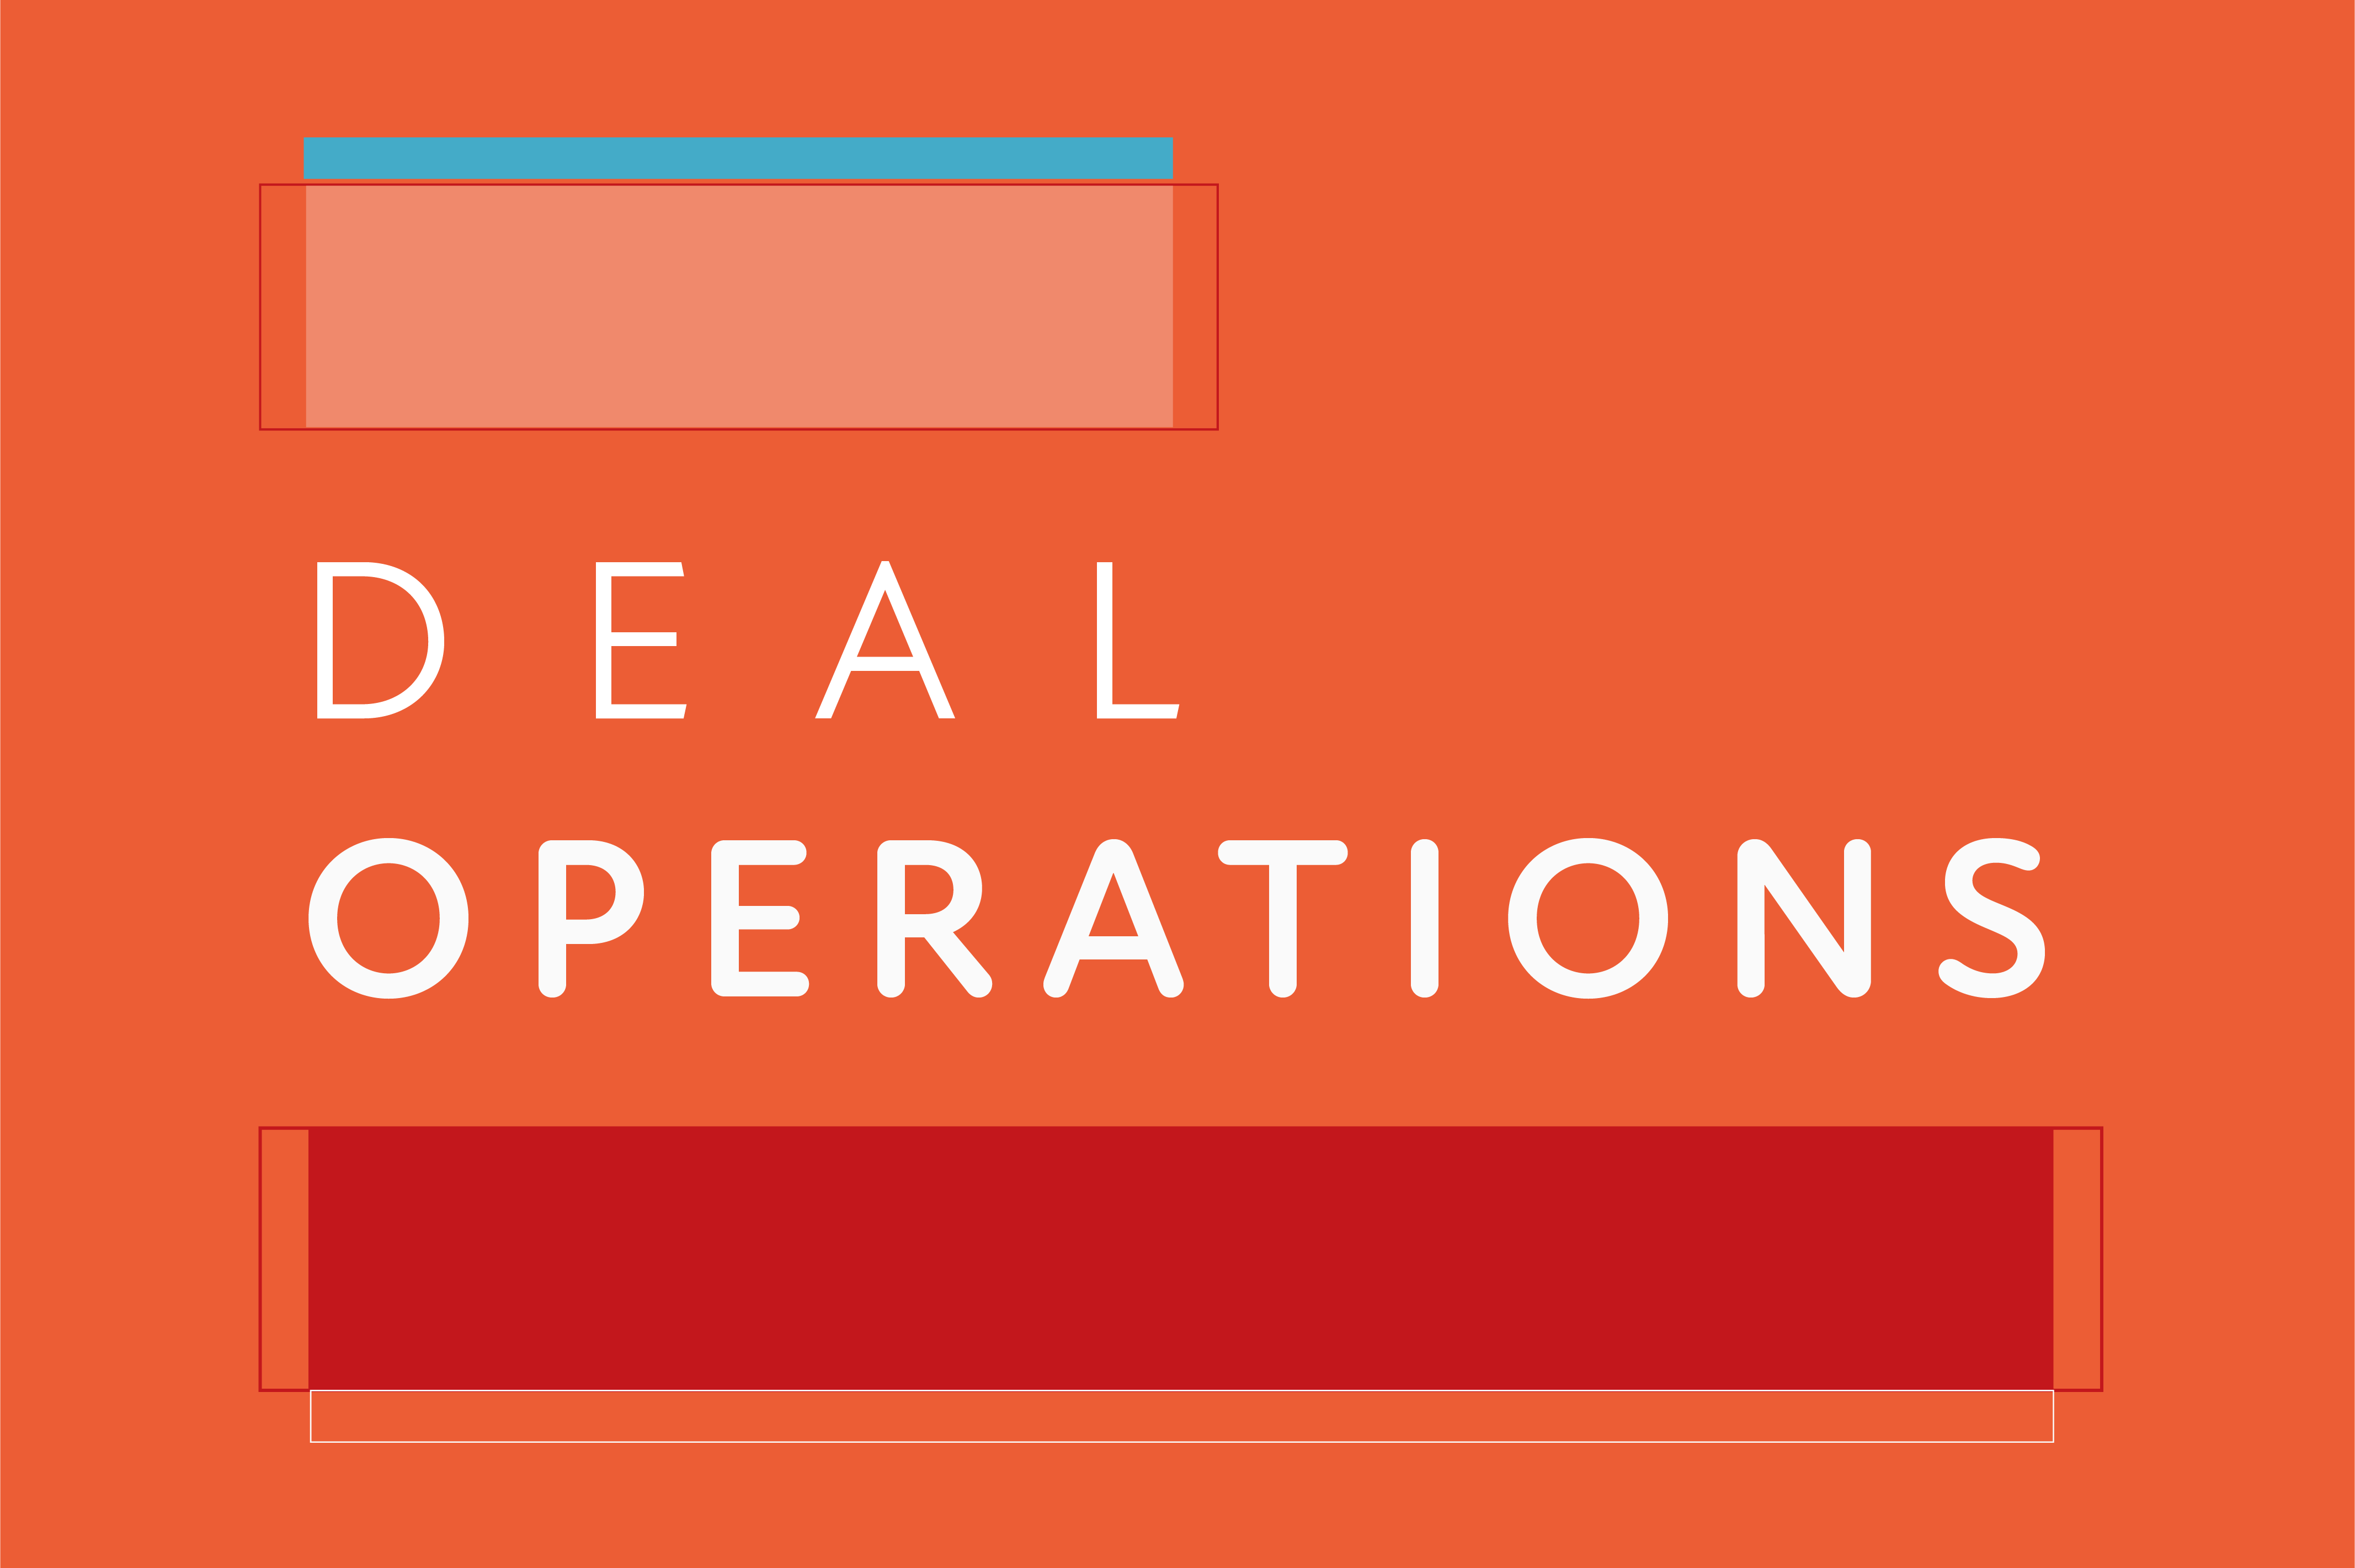 DEAL Operations website launches